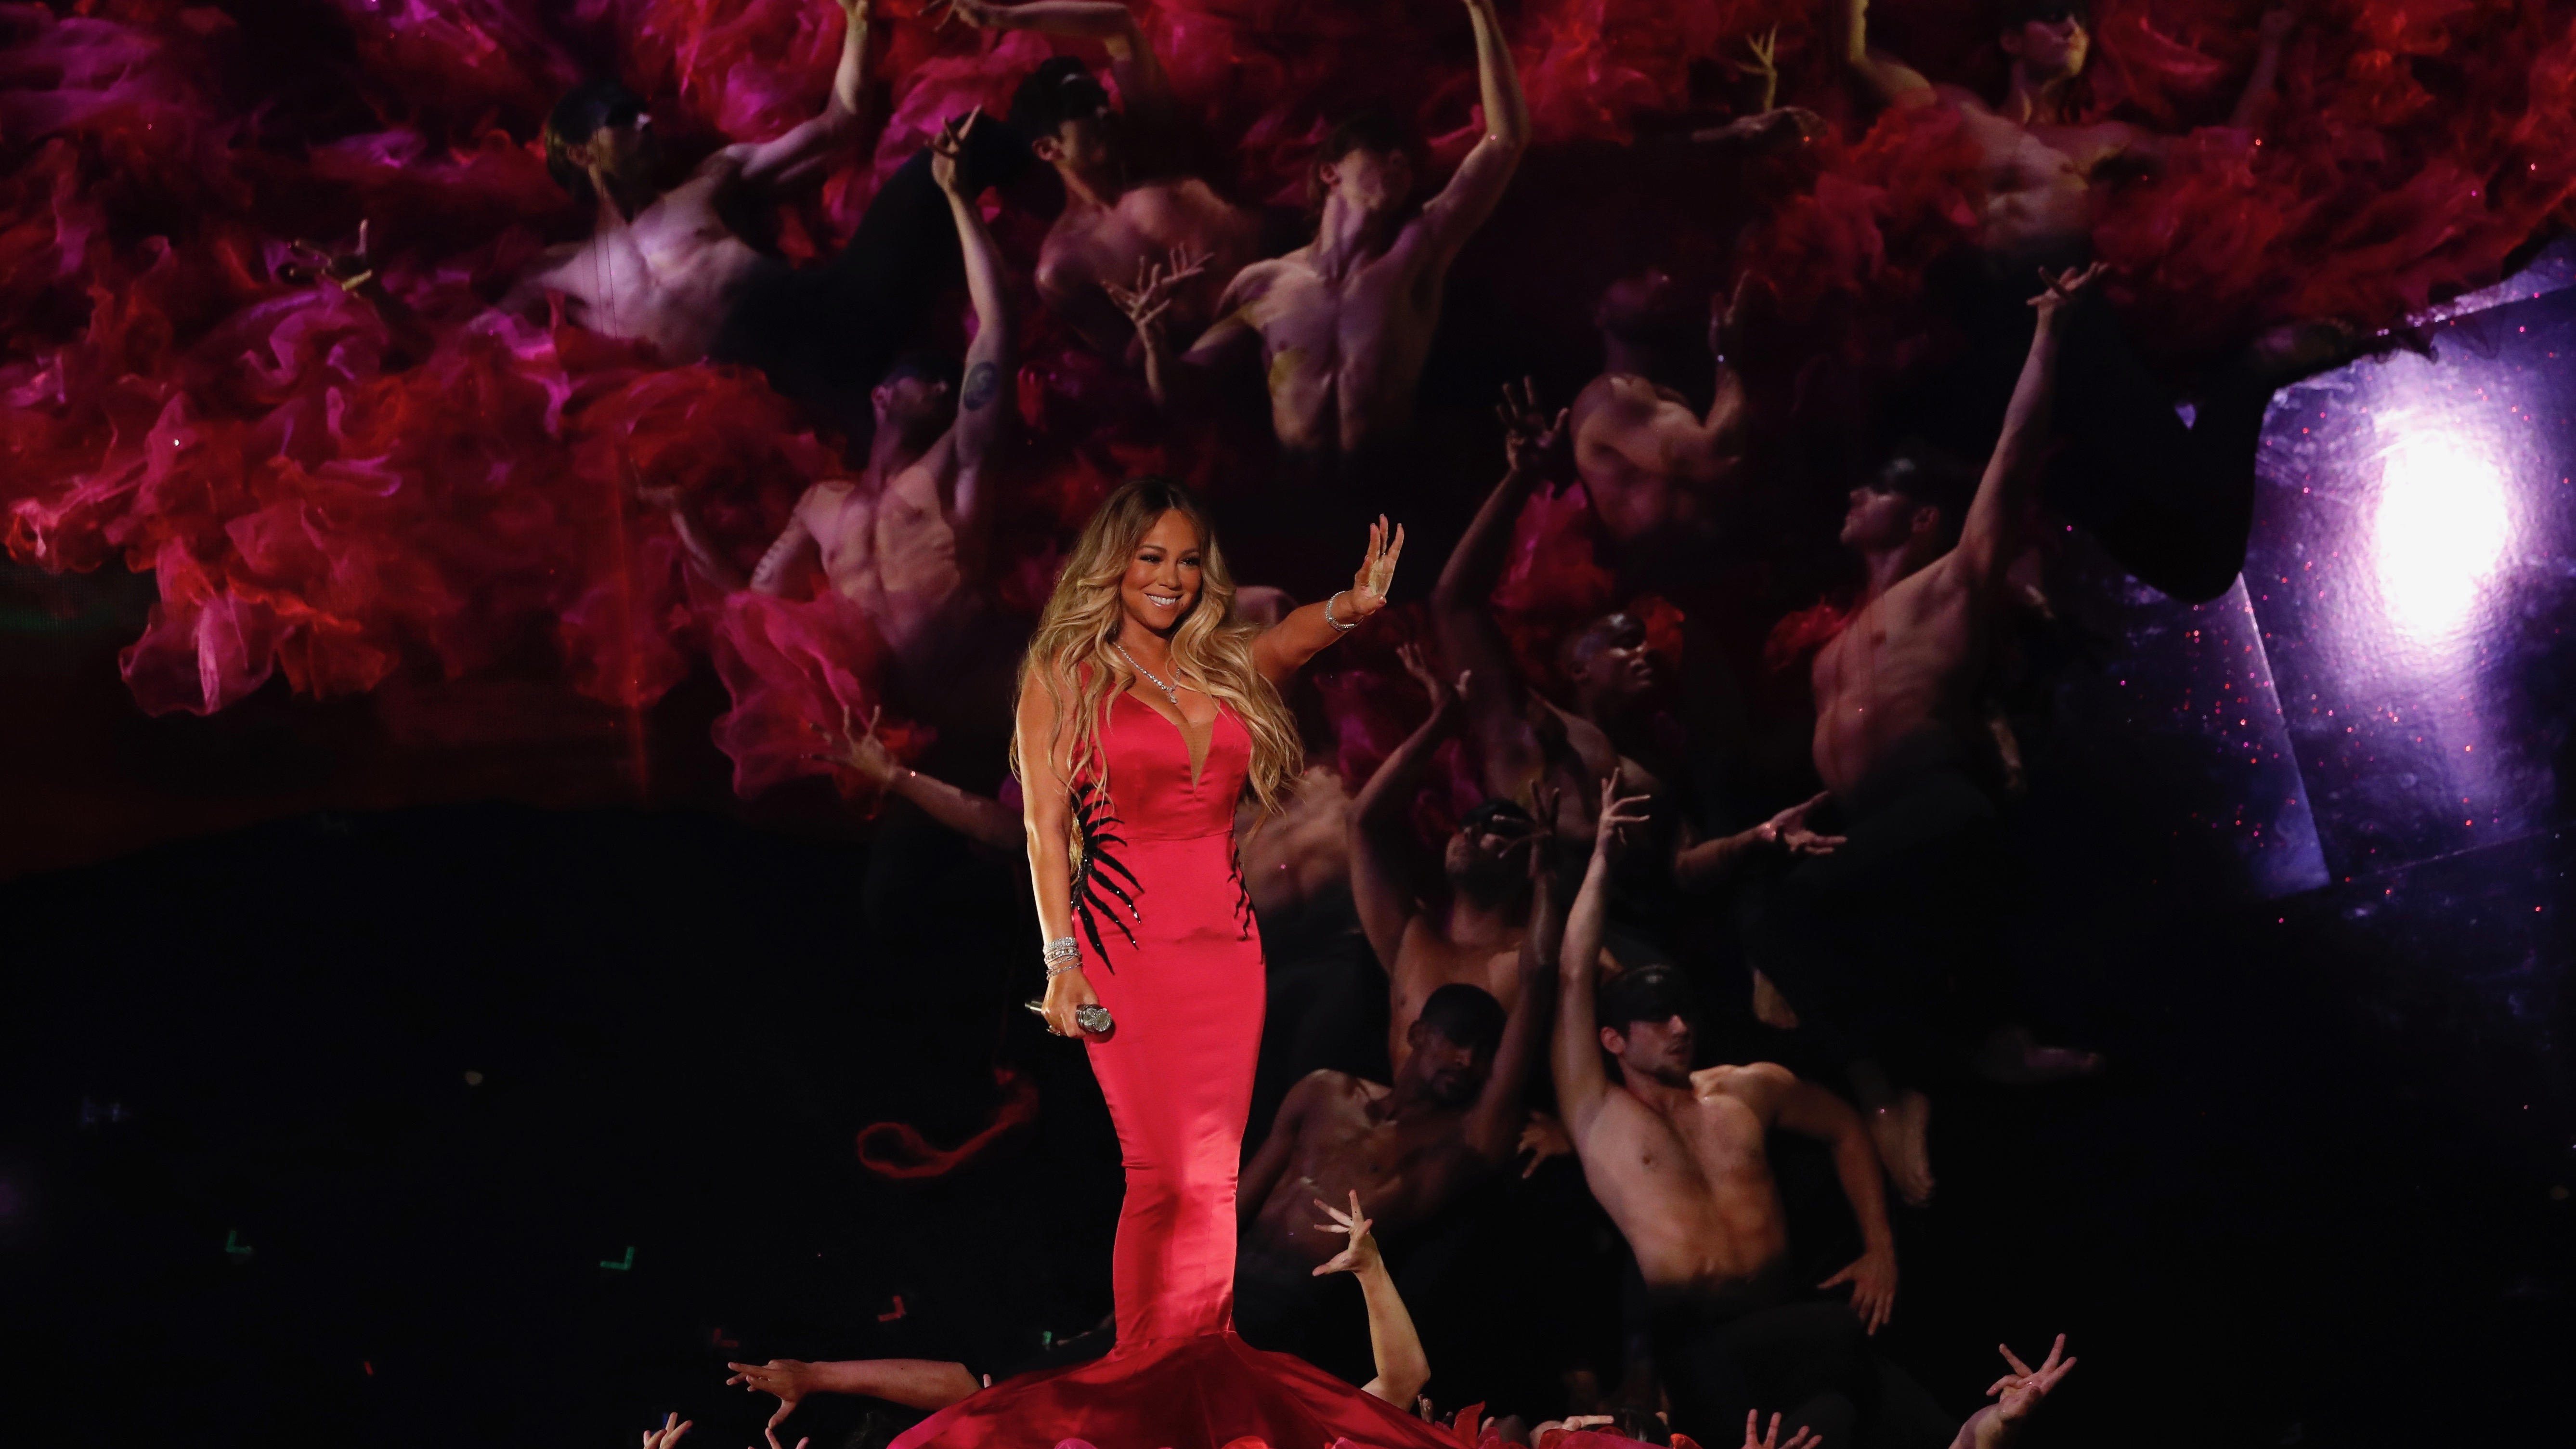 Mariah Carey's record-breaking day shows how little